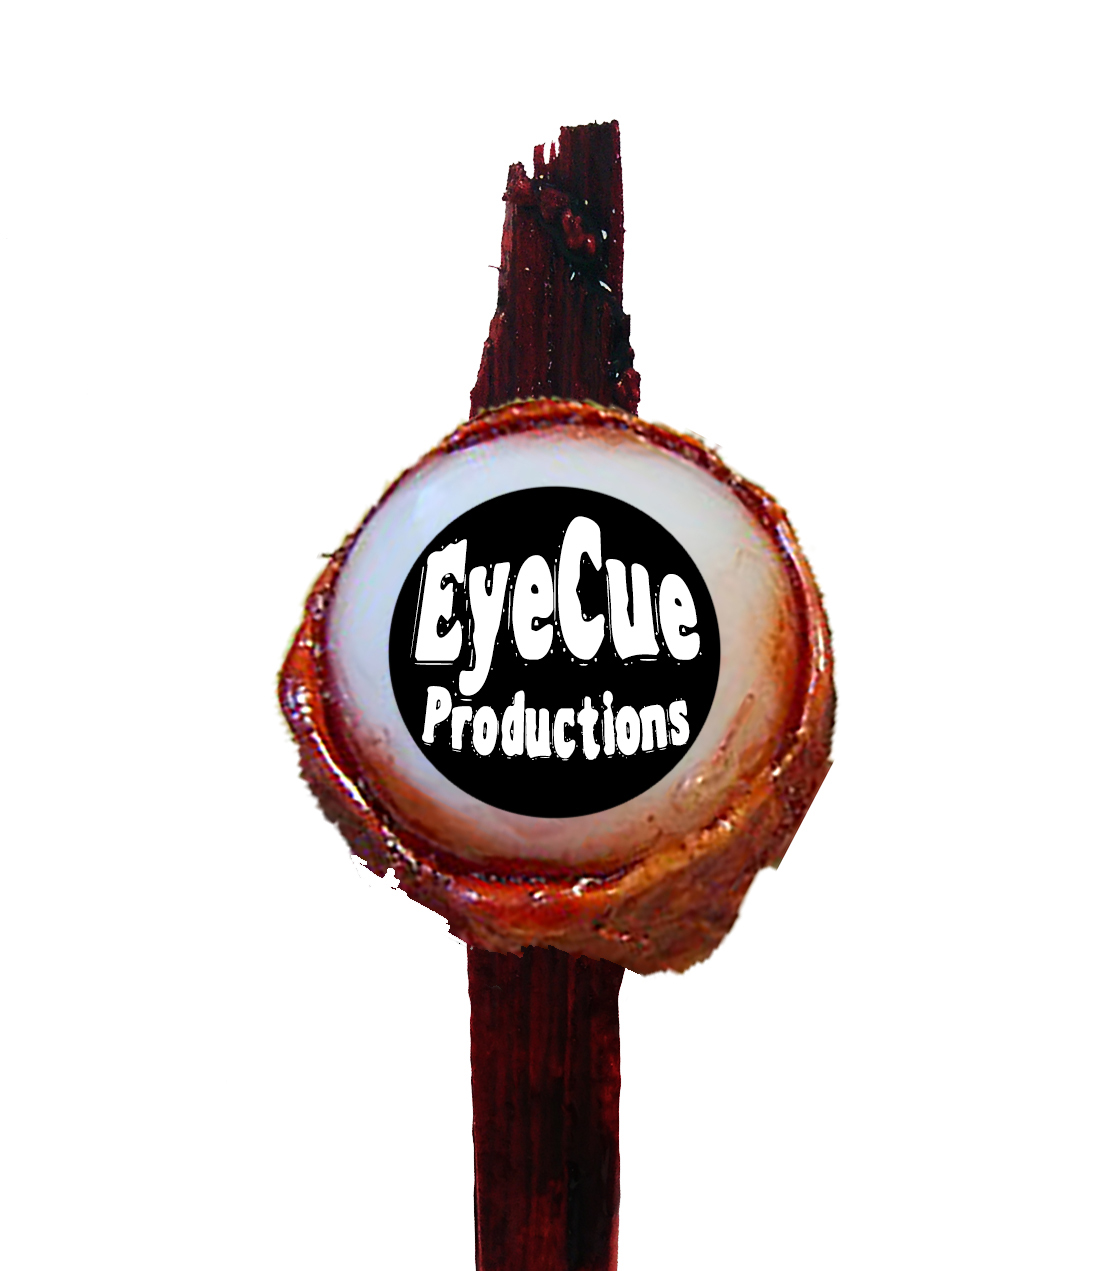 eyecue-spine-small